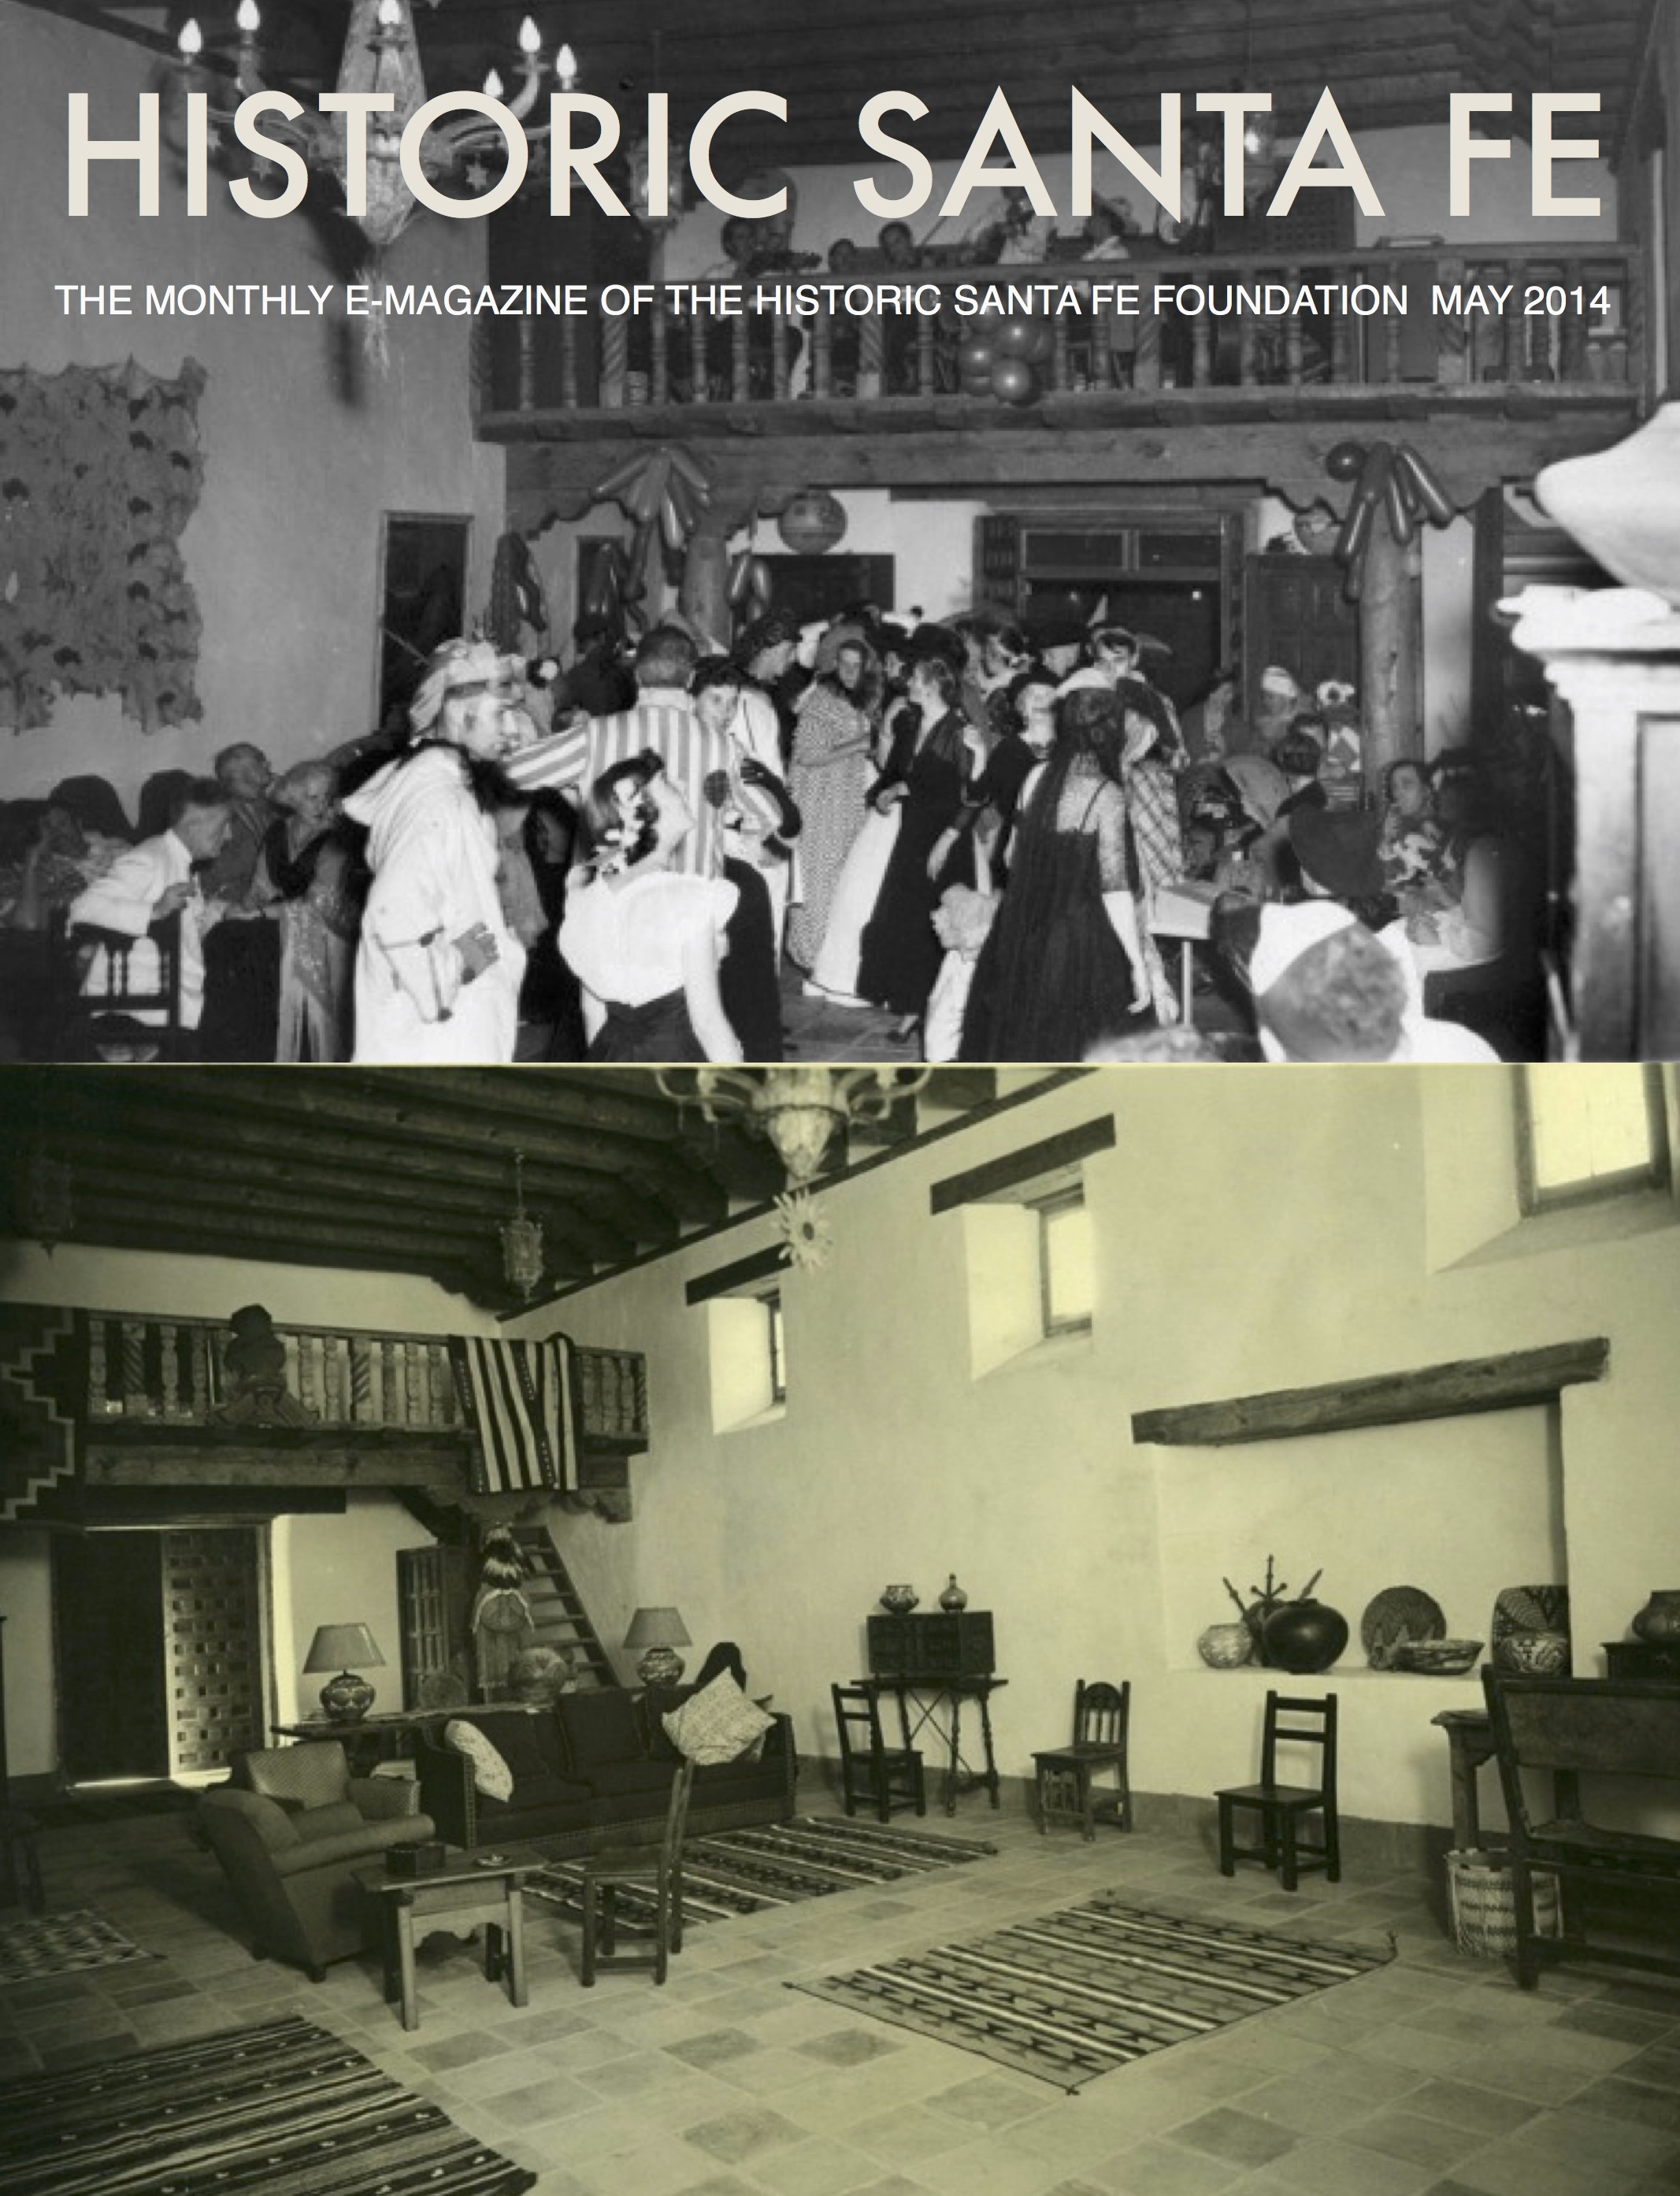 May 2014 : Updates on our work including our historic preservation projects, historic registry development, archiving, historical research and public outreach, an interview Executive Director Pete Warzel, and an update on the 2014 Mother's Day Tour